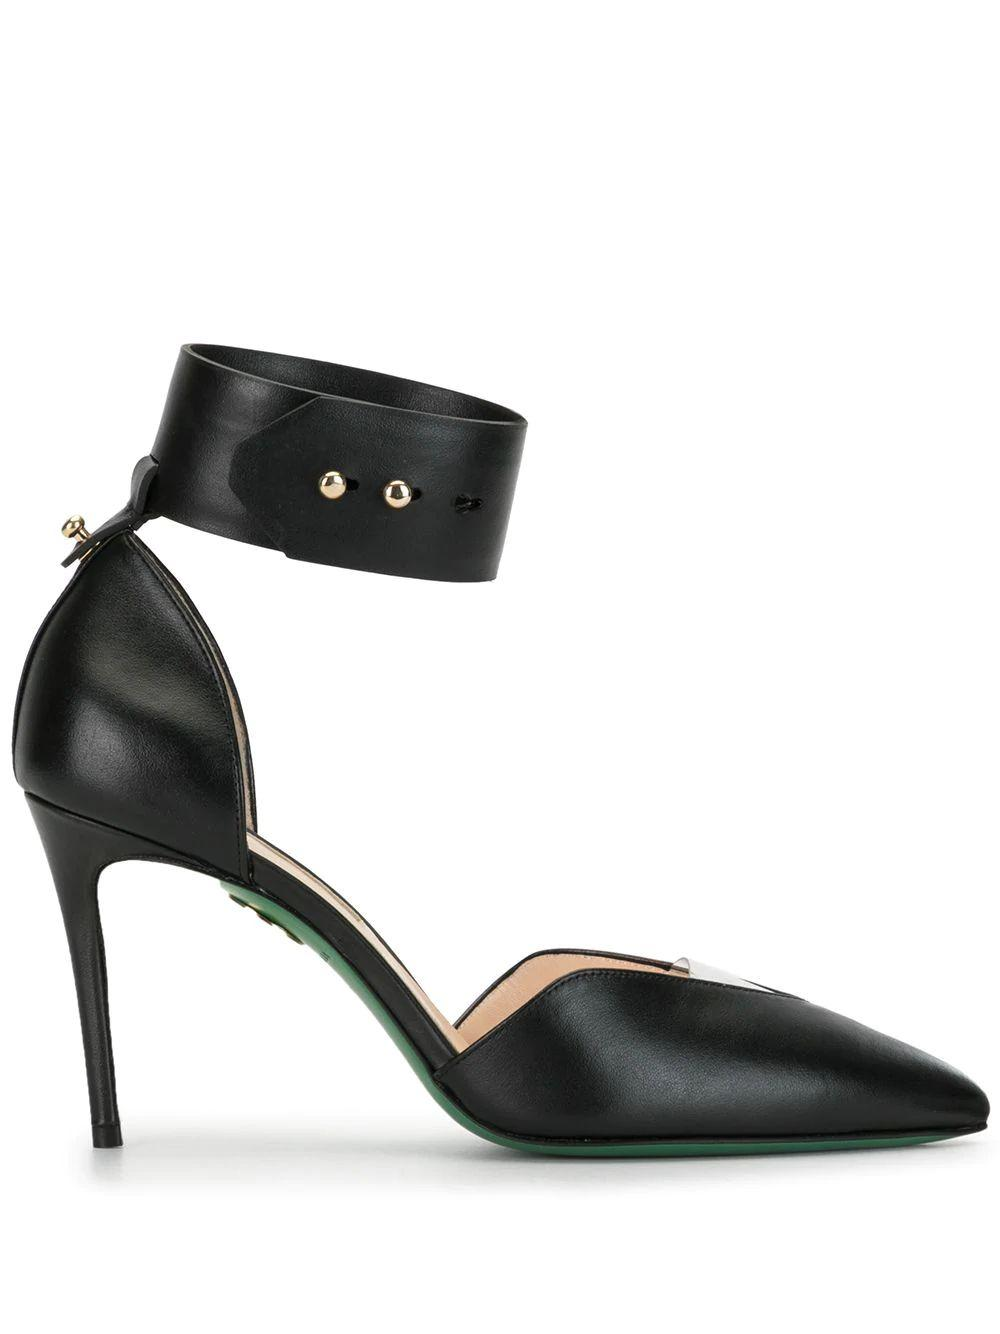 Sara 90mm Pump With Ankle Cuff Item # S-007-01-L